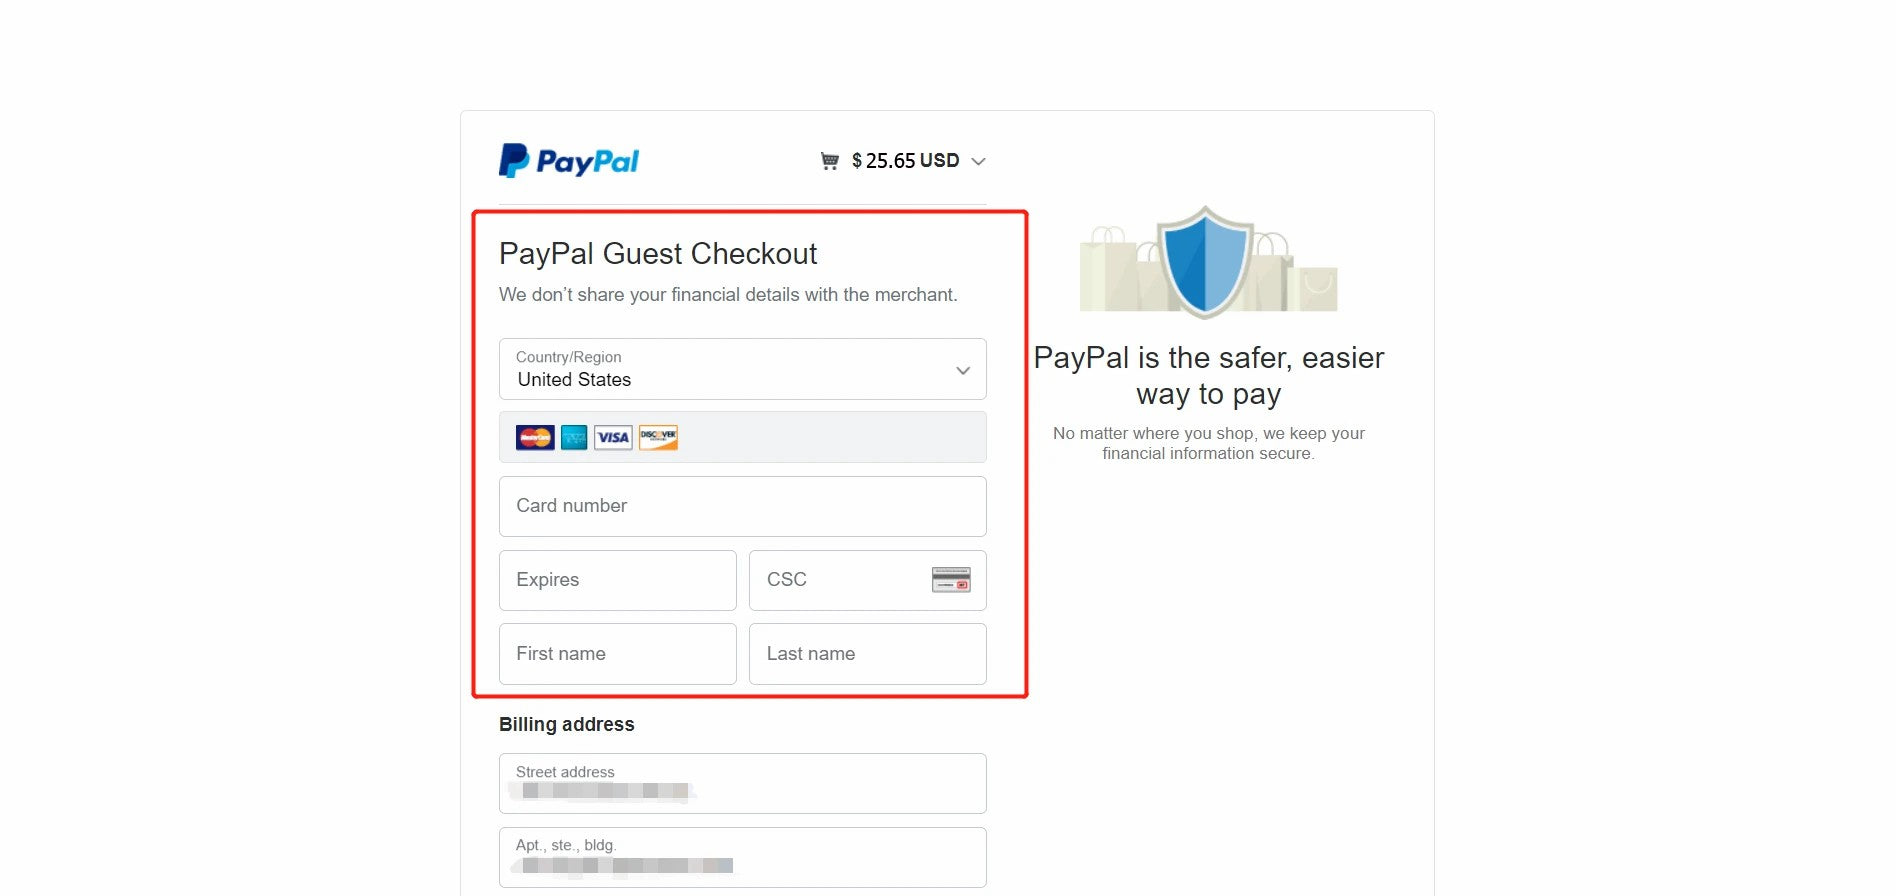 CREDIT CARD PAYMENT NOTES